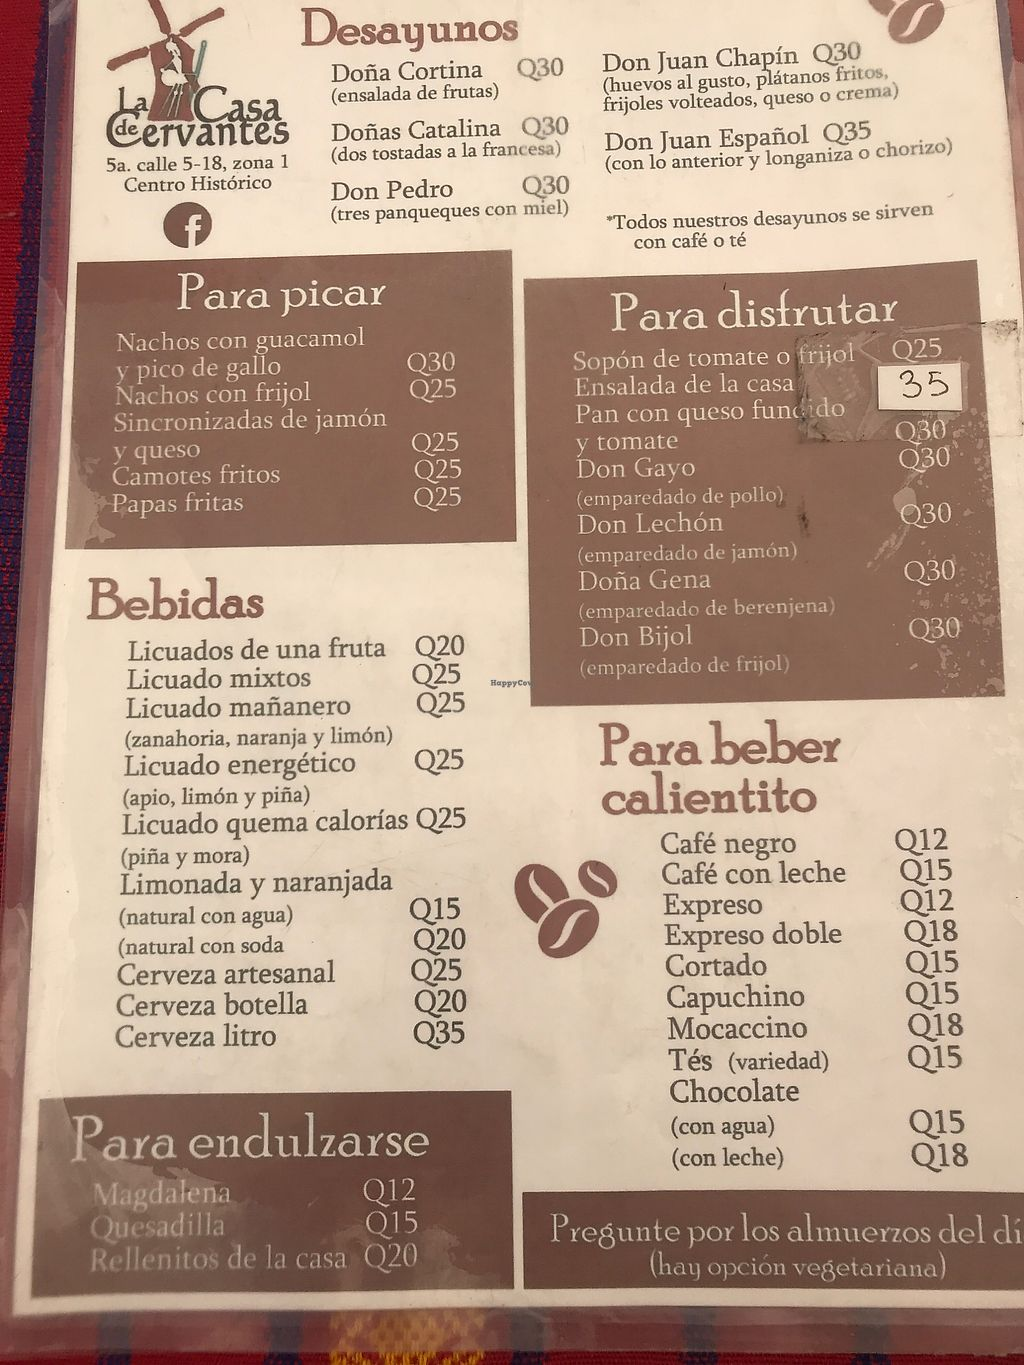 """Photo of La Casa de Cervantes  by <a href=""""/members/profile/IndreArbataityte"""">IndreArbataityte</a> <br/>Menu <br/> February 21, 2018  - <a href='/contact/abuse/image/73229/362129'>Report</a>"""